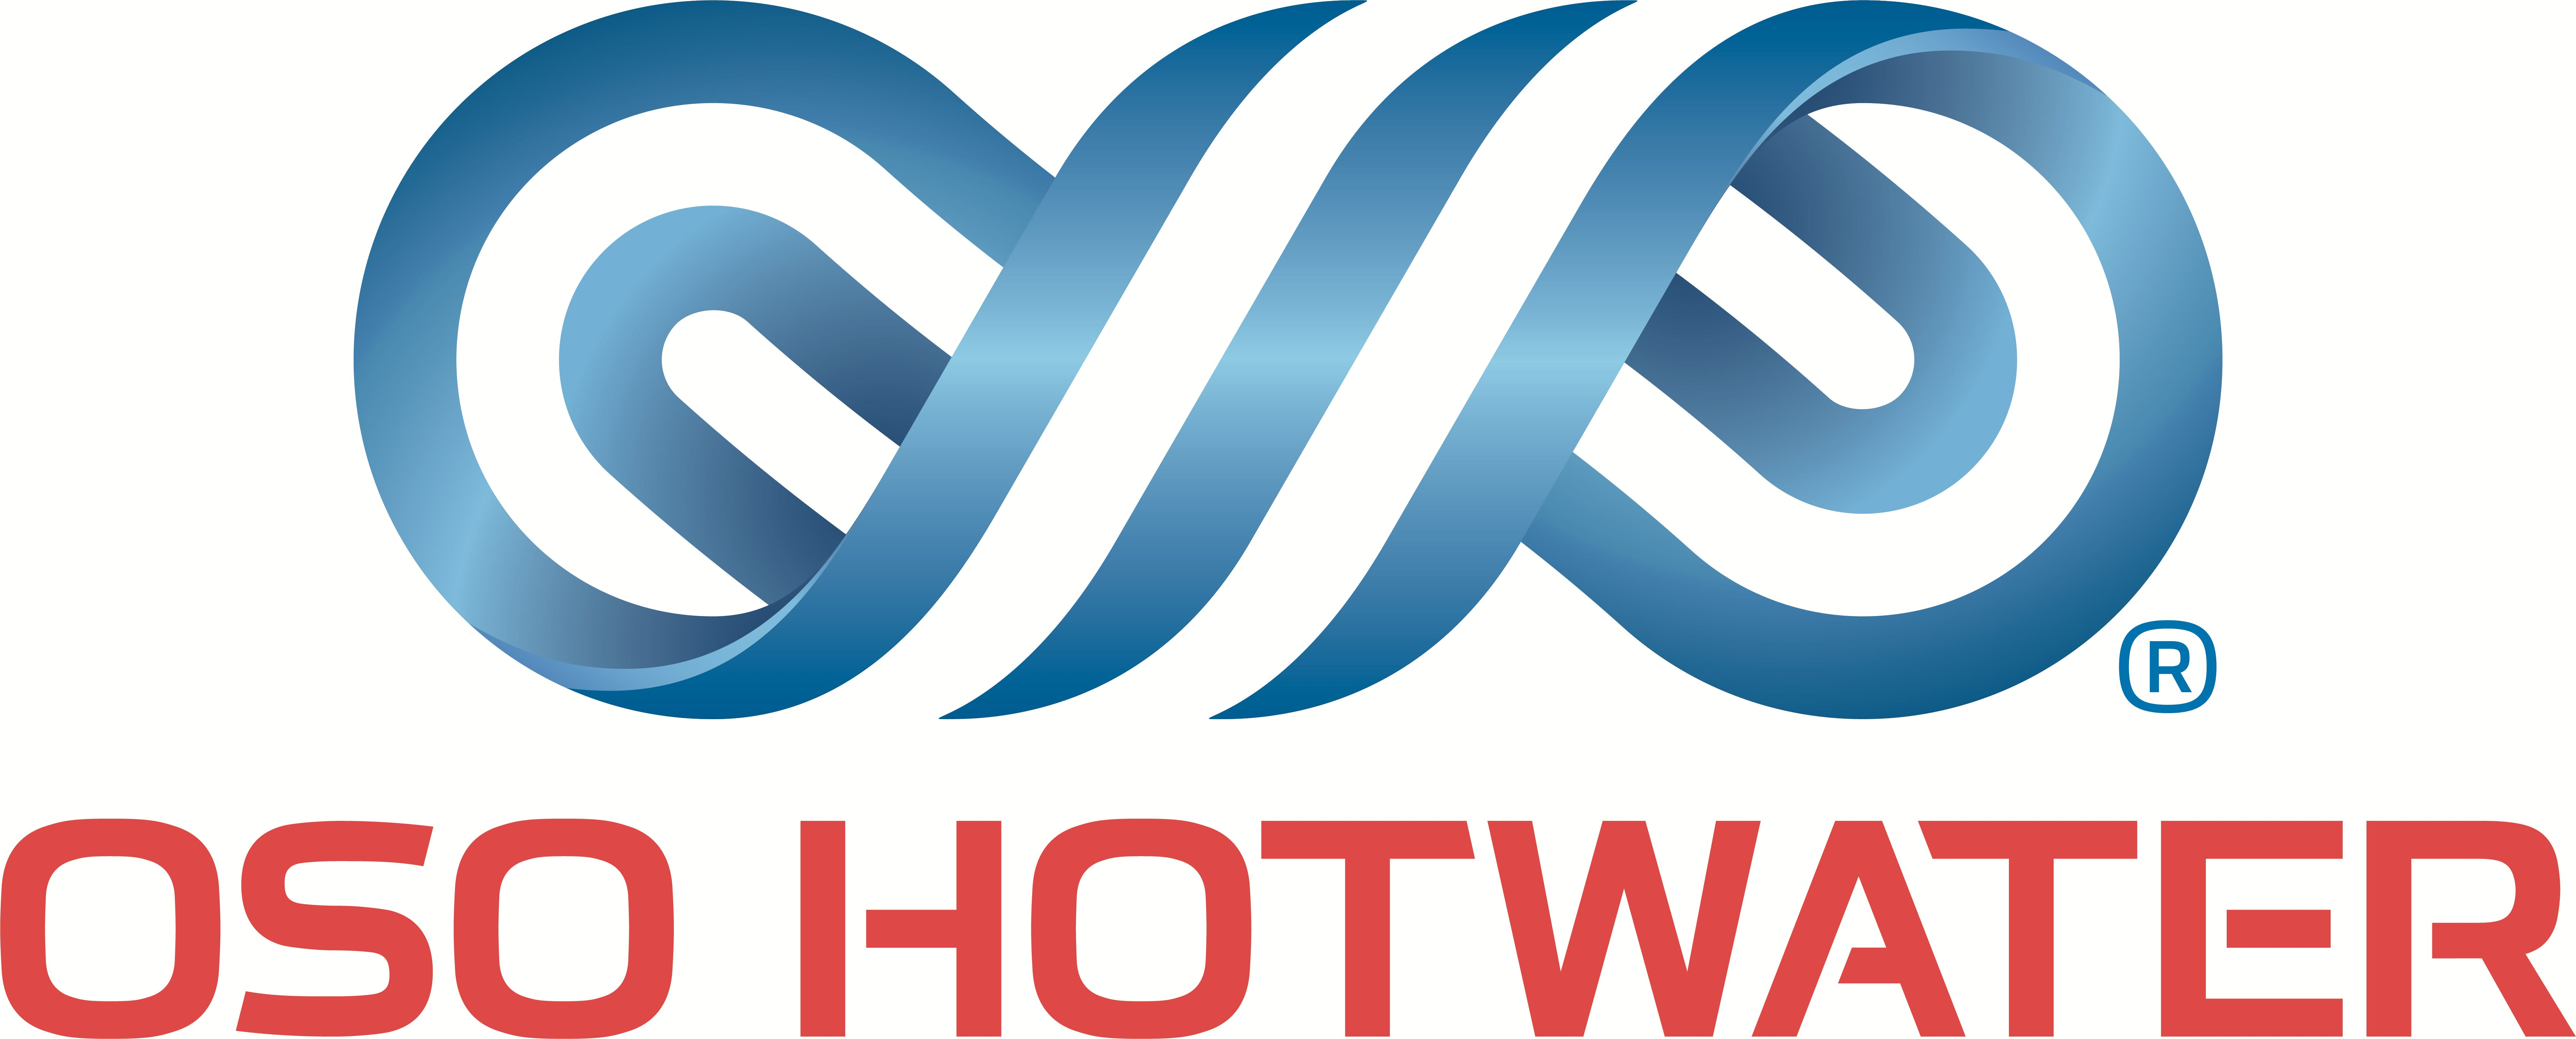 oso-hotwater-corporate-logo-2017-cmyk-toned.jpg